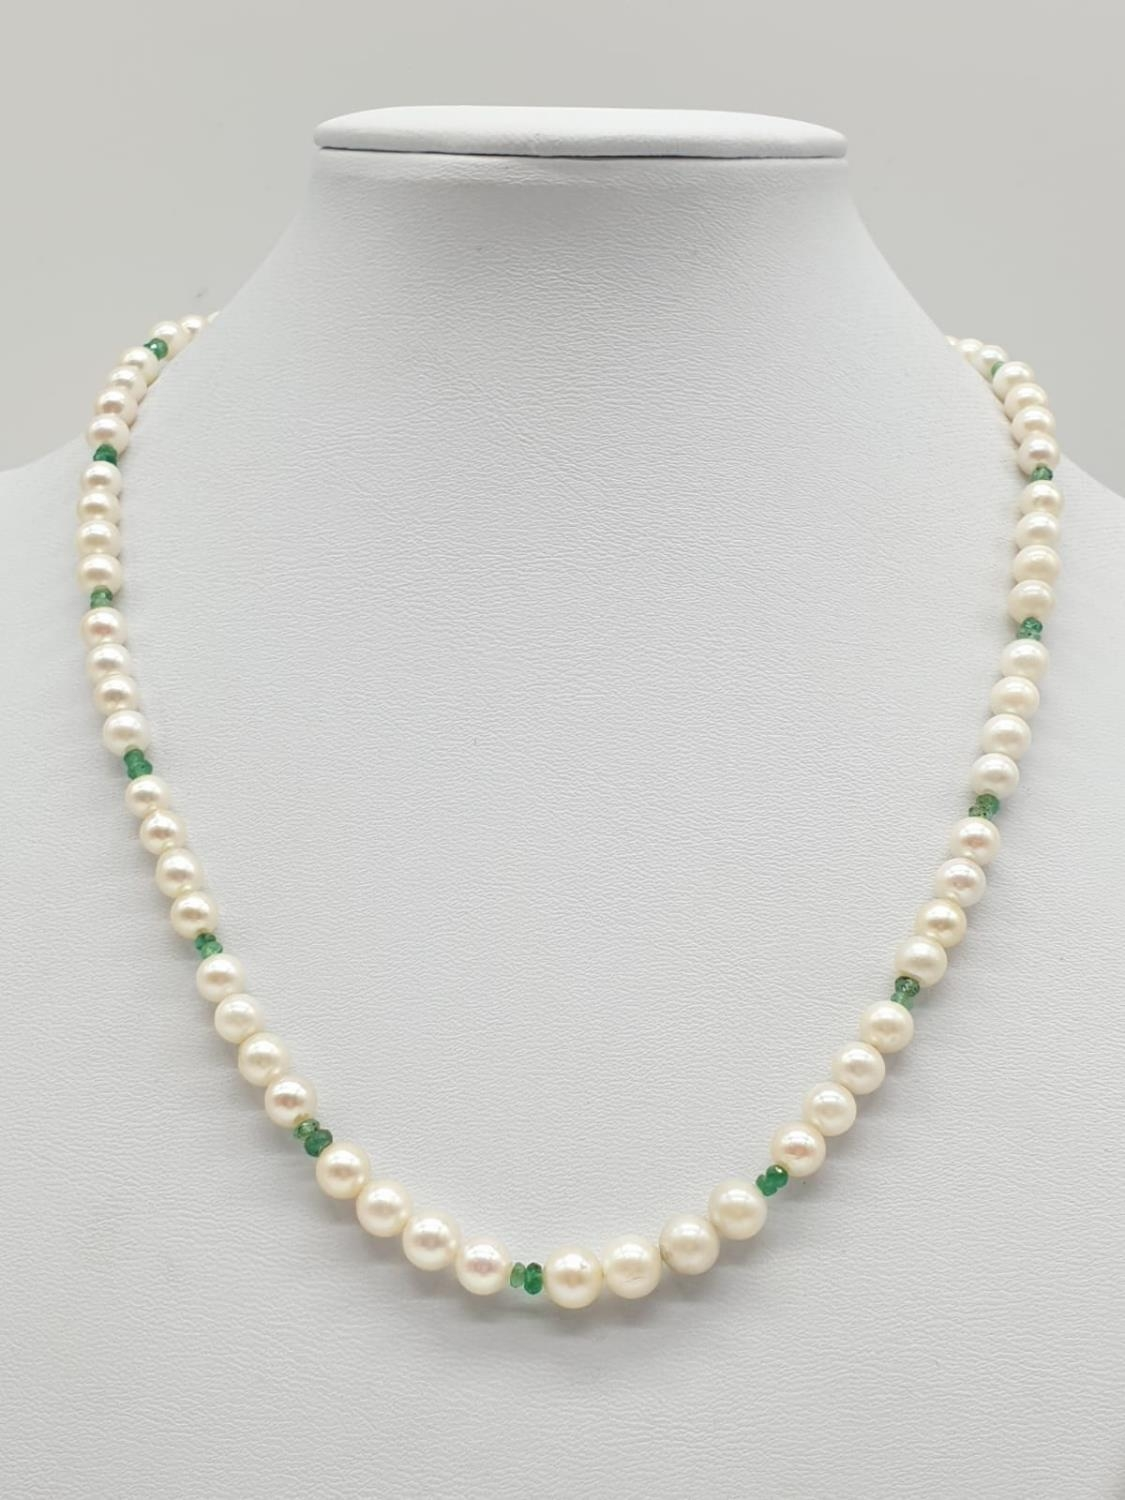 Cultured Pearl and Emerald NECKLACE with 9ct Gold Clasp. 16.3g 40cm